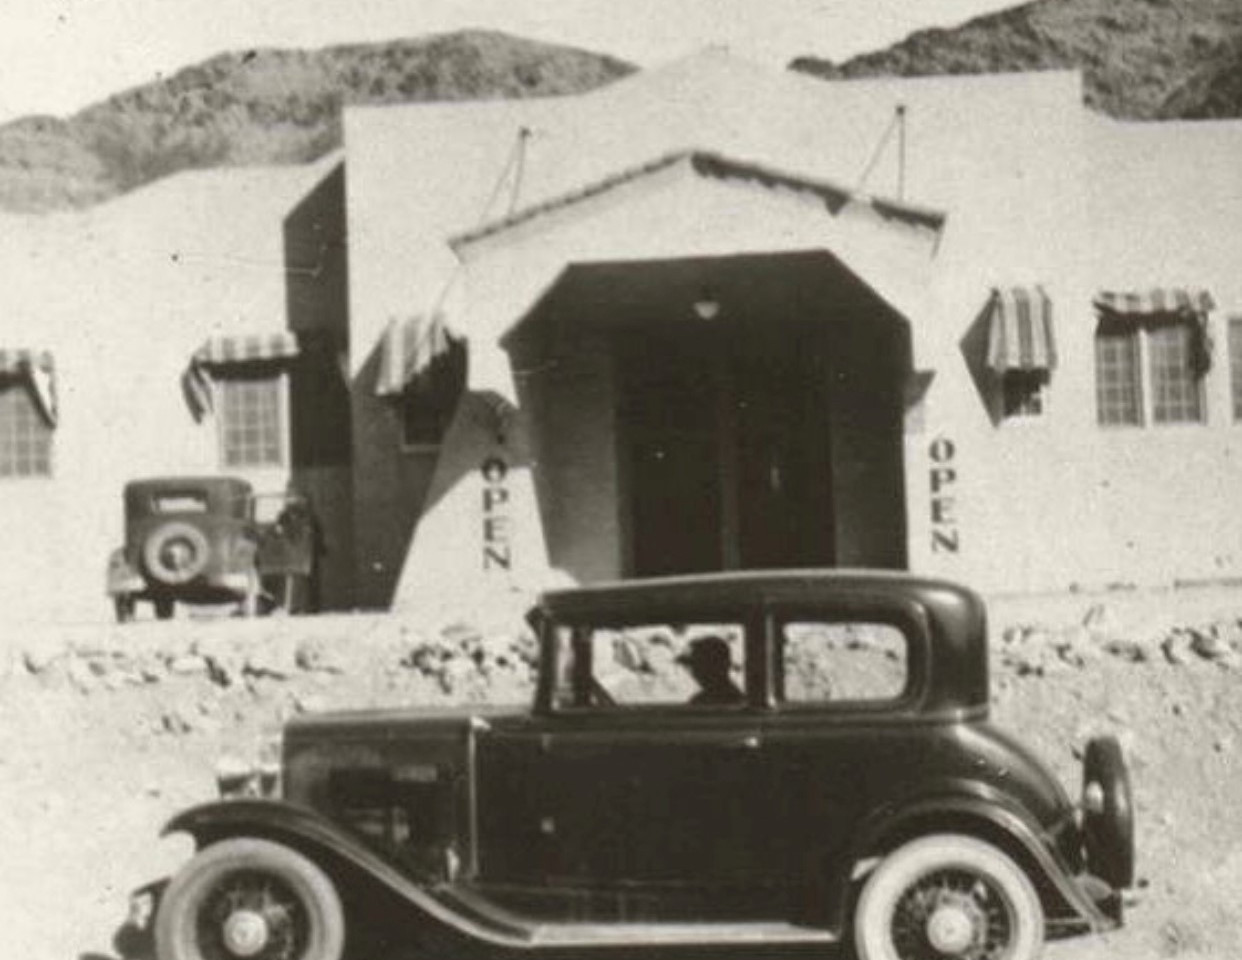 This is the same entrance in our casino today as it was in 1931.